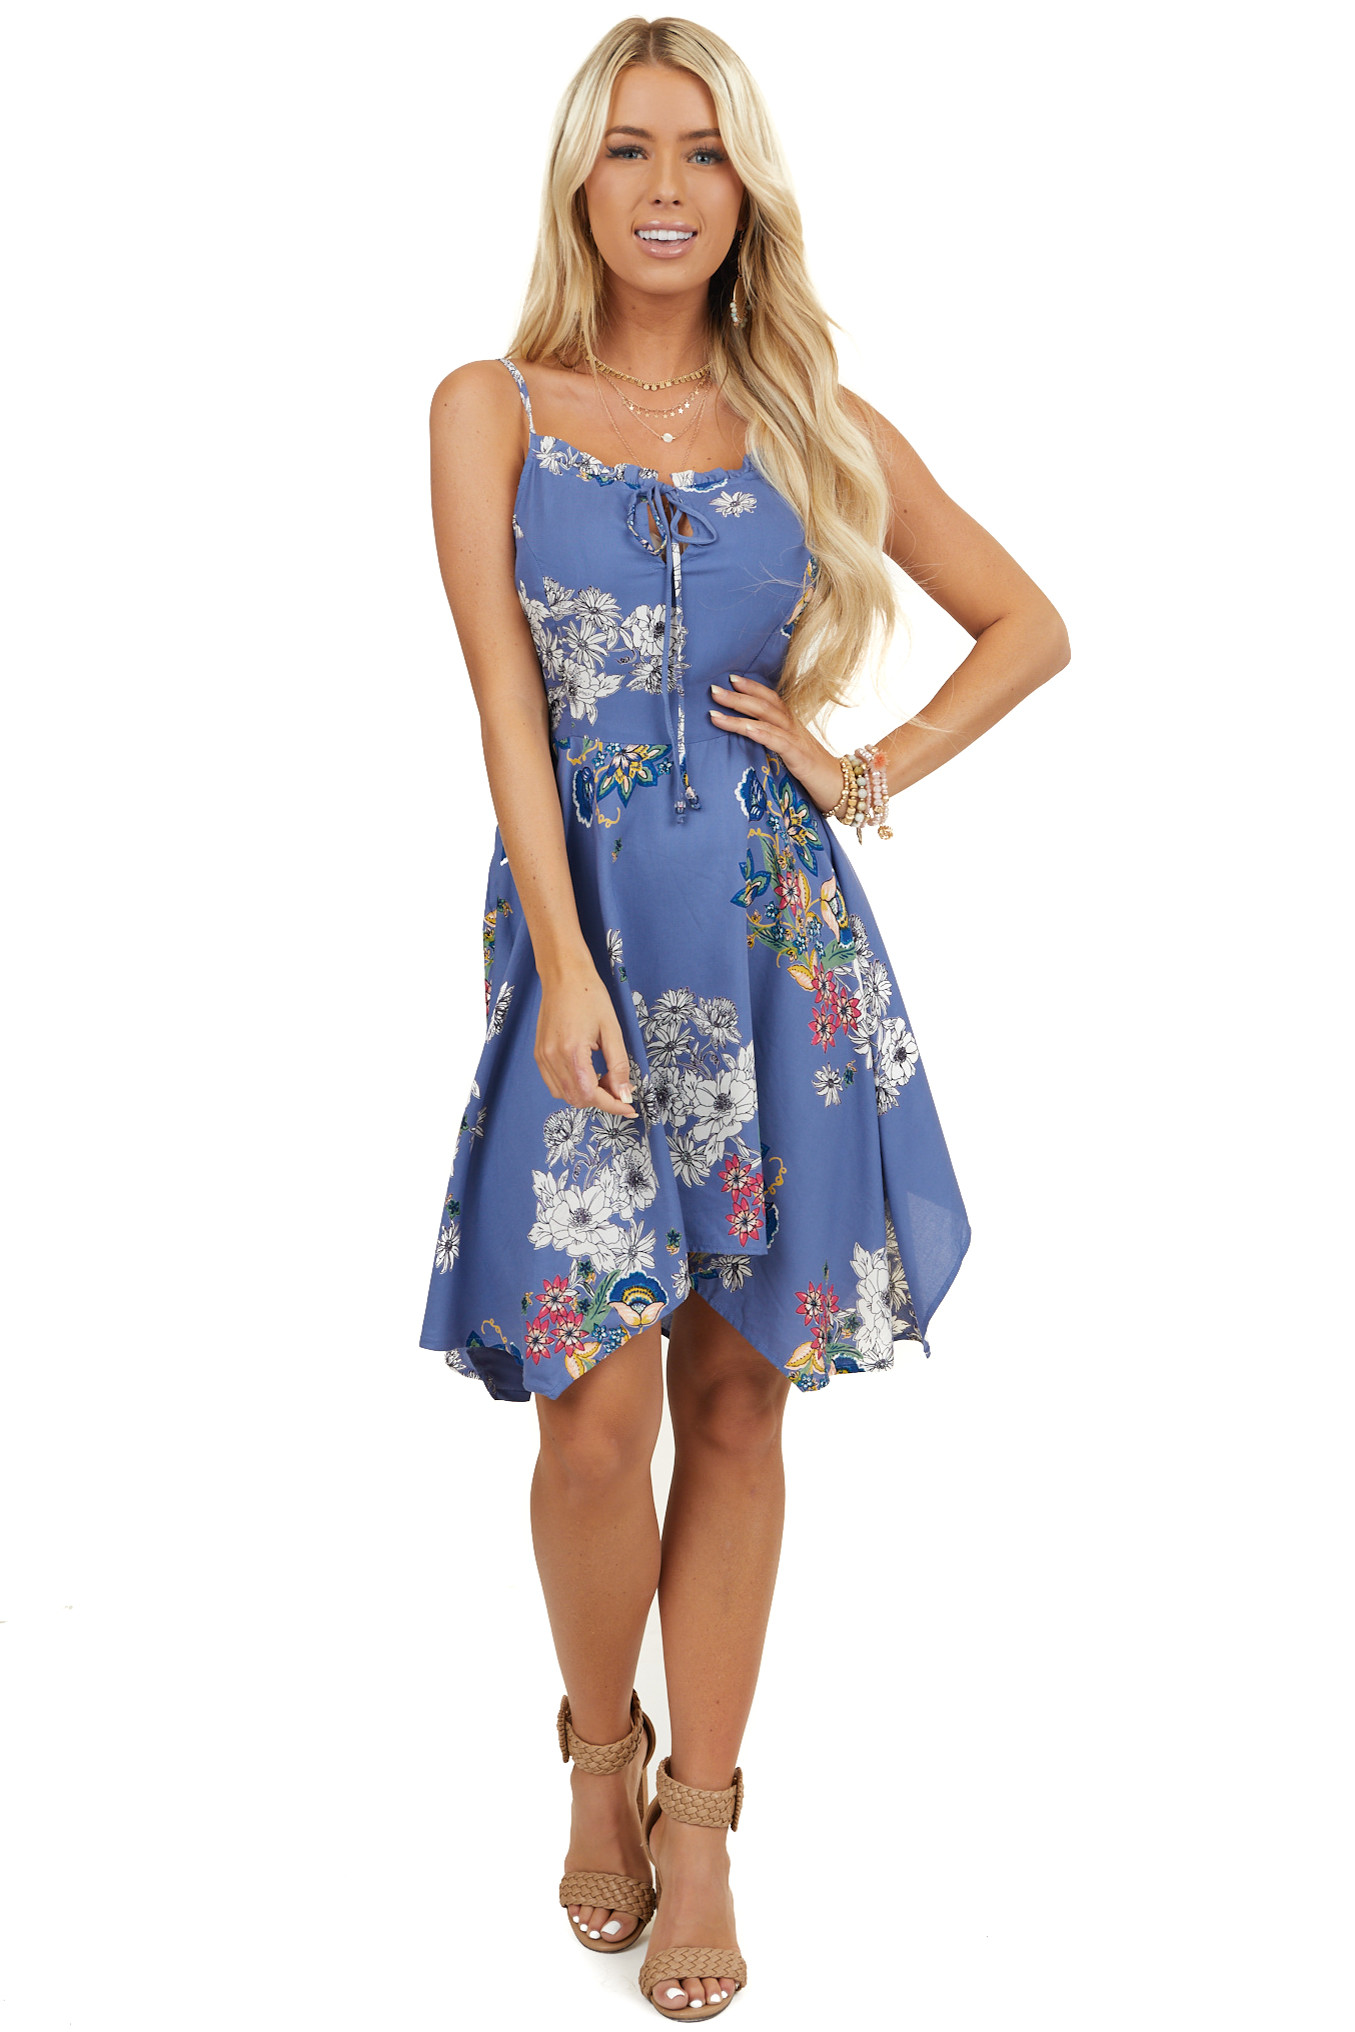 Cornflower Floral Sleeveless Dress with Handkerchief Hemline